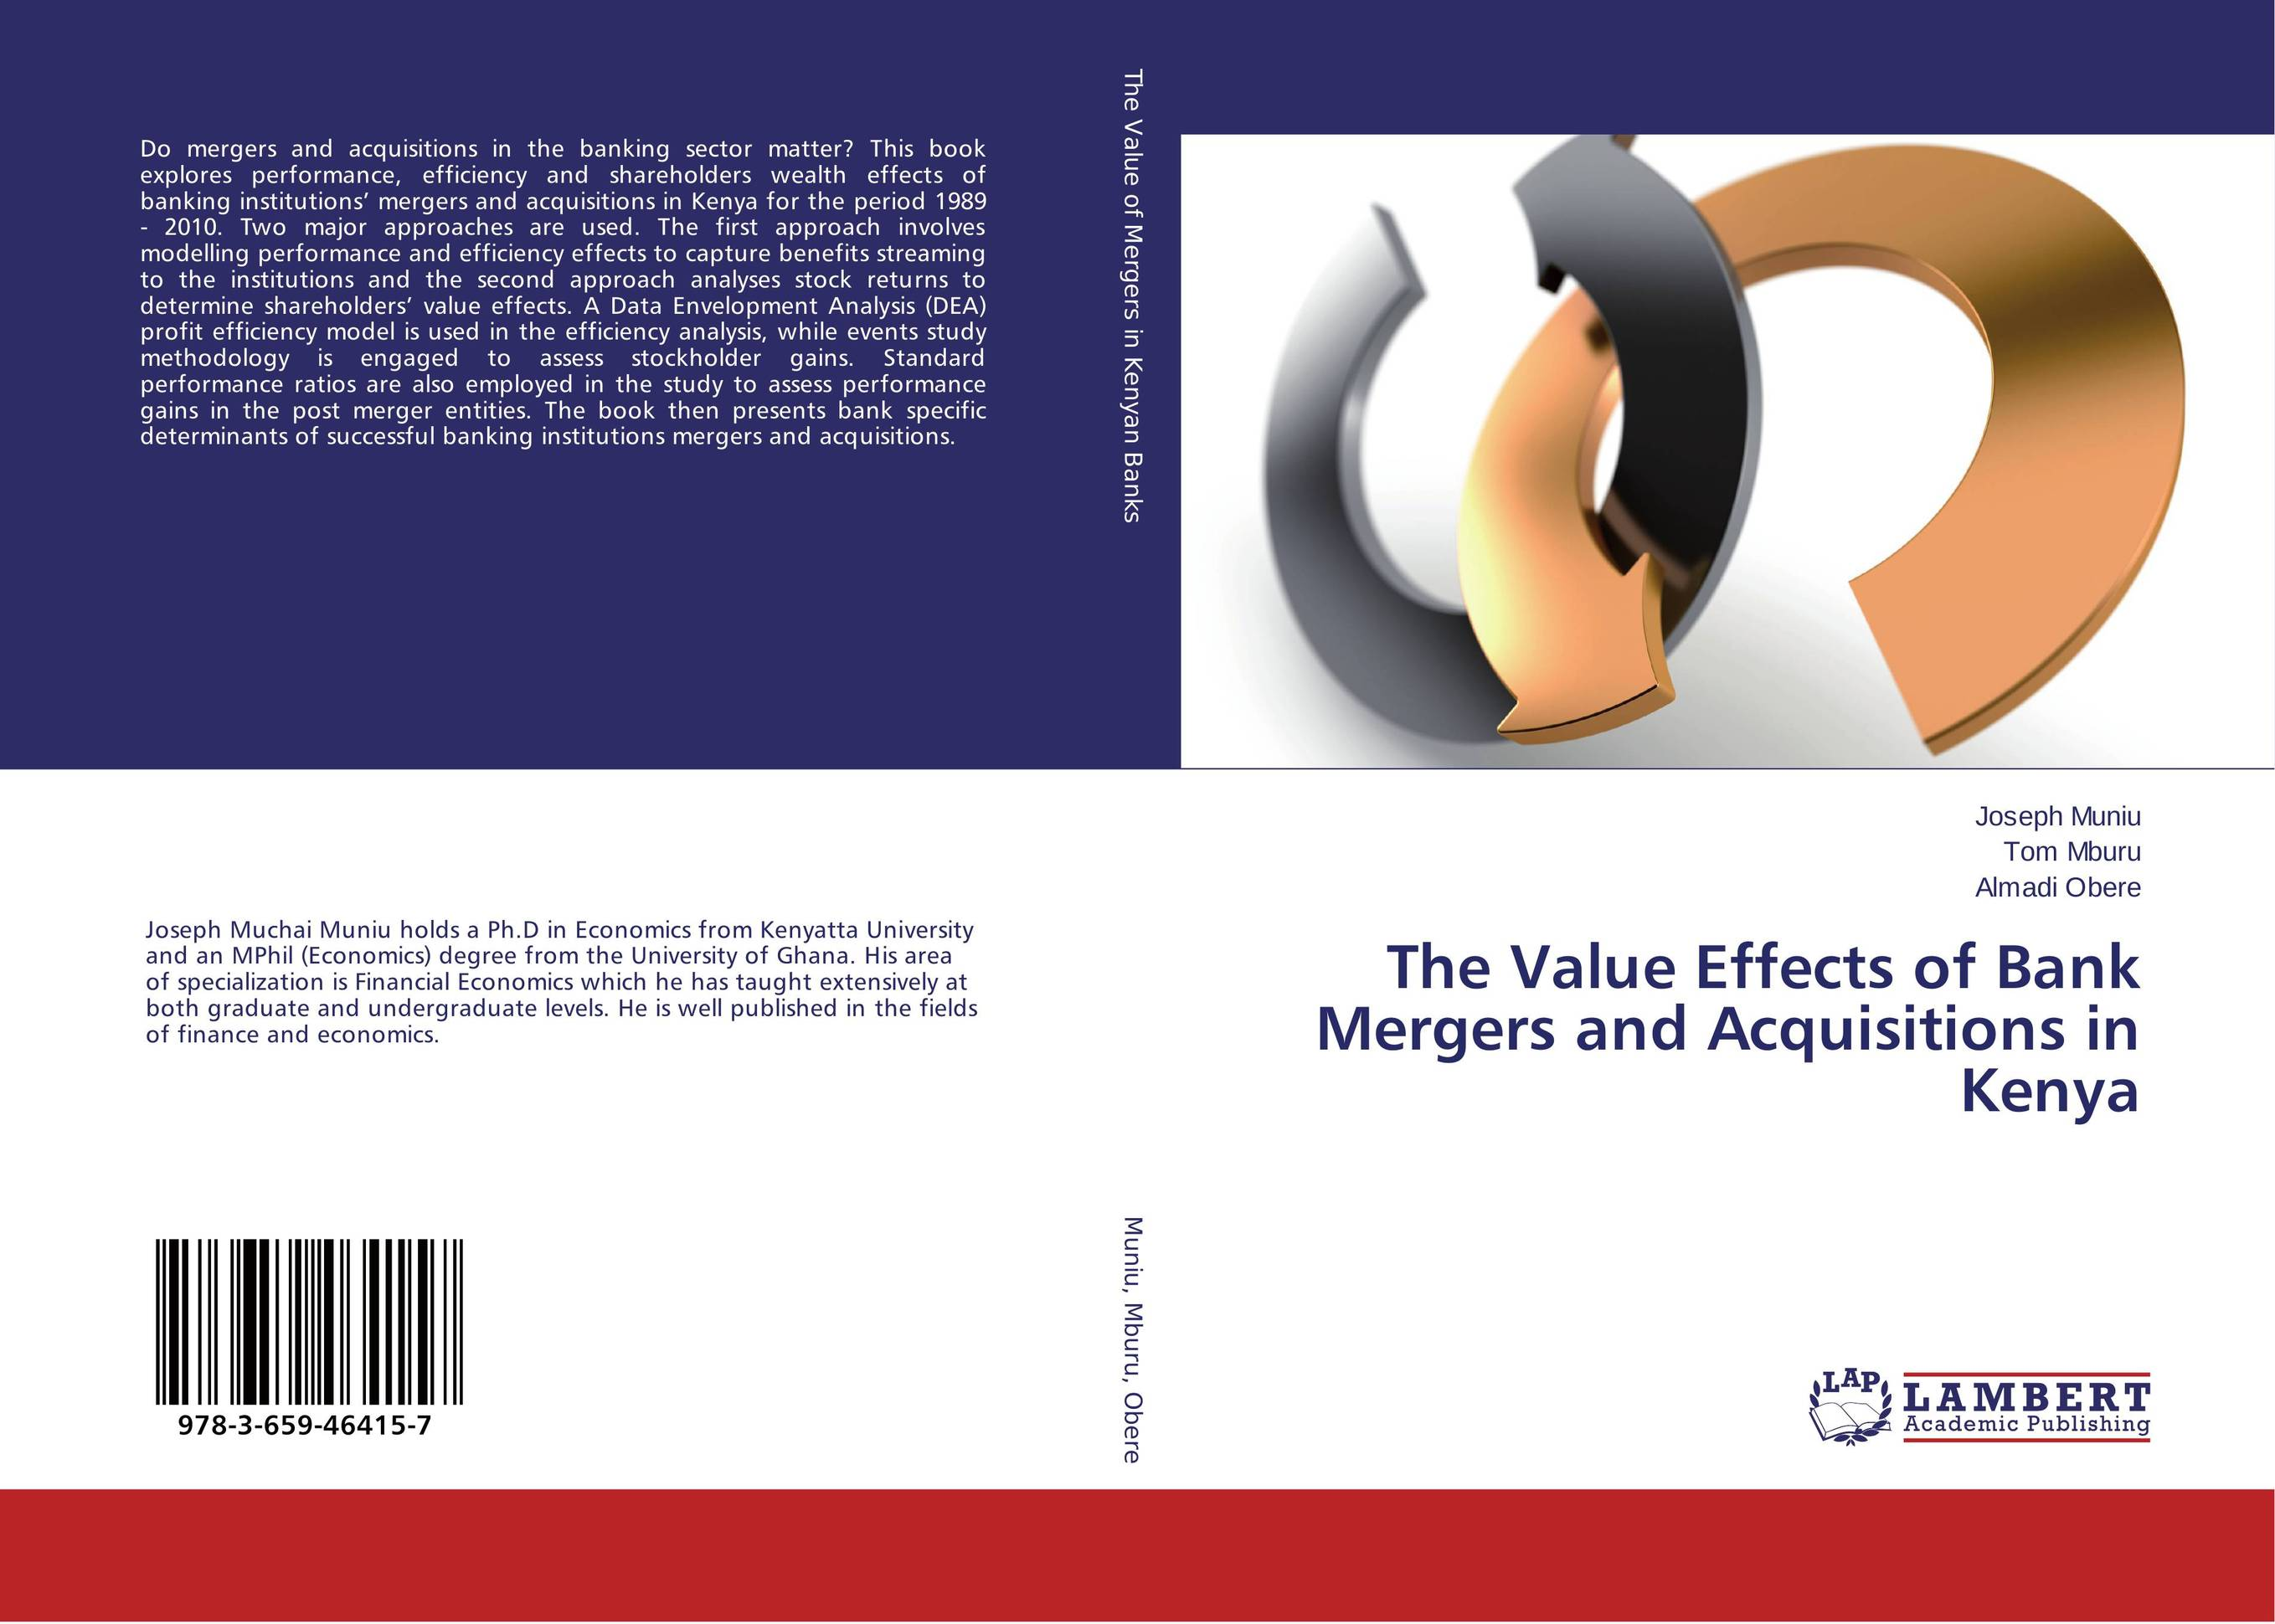 The Value Effects of Bank Mergers and Acquisitions in Kenya цена и фото